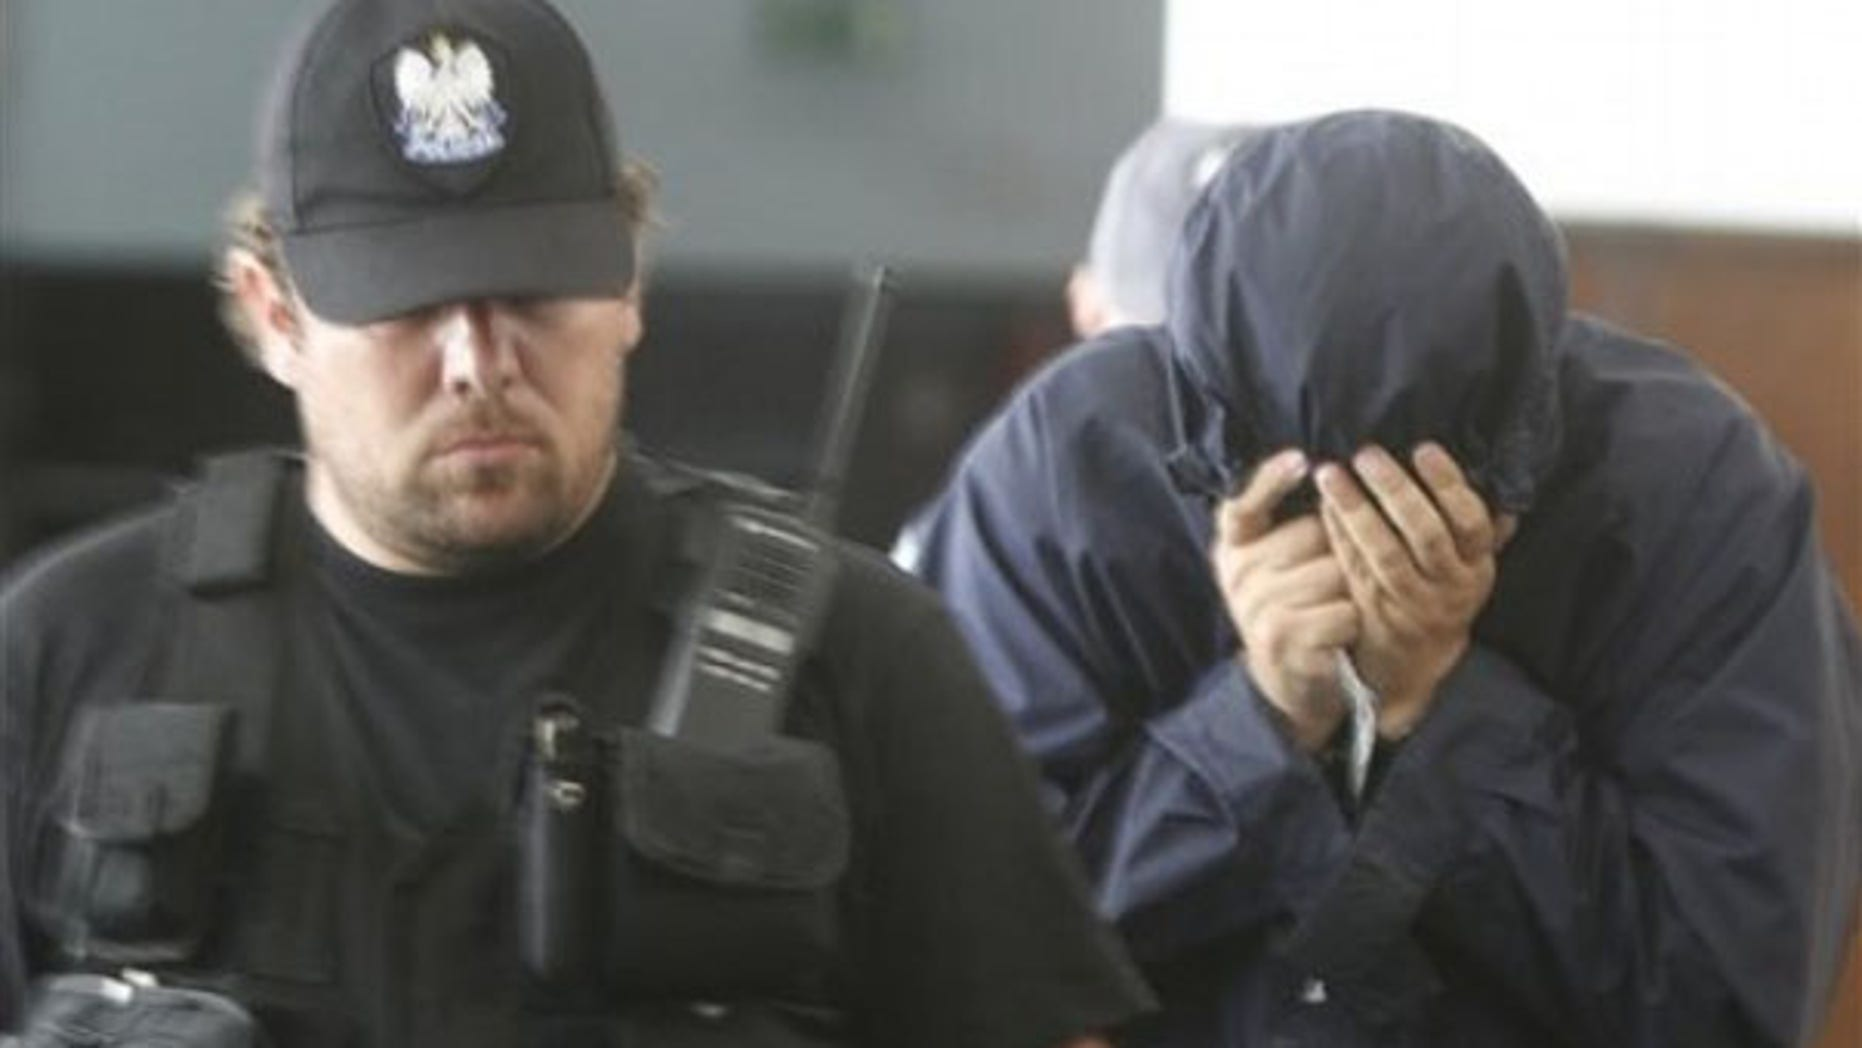 July 5: Hiding his face, Israeli citizen Uri Brodsky is escorted by police officials to a court session in Warsaw.